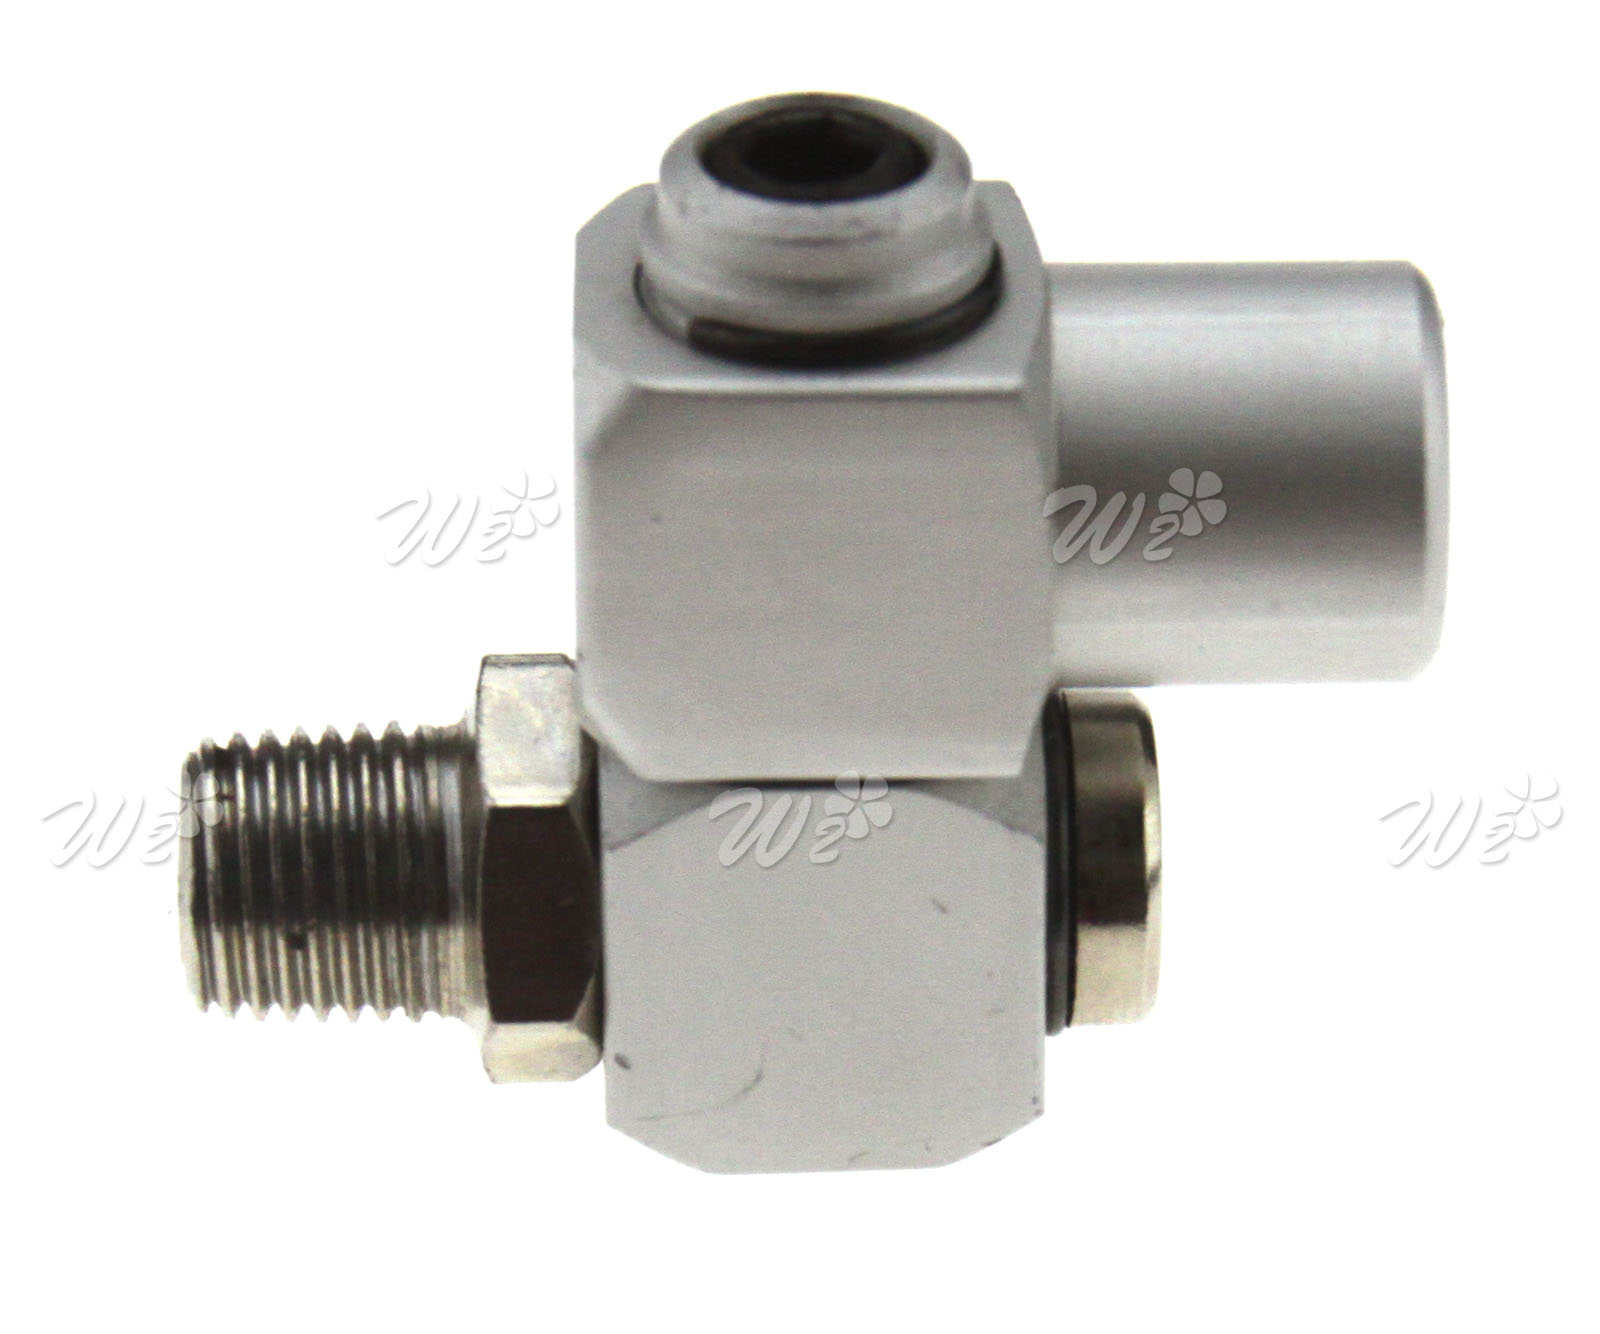 Air hose swivel degree fitting connector quot bsp tool